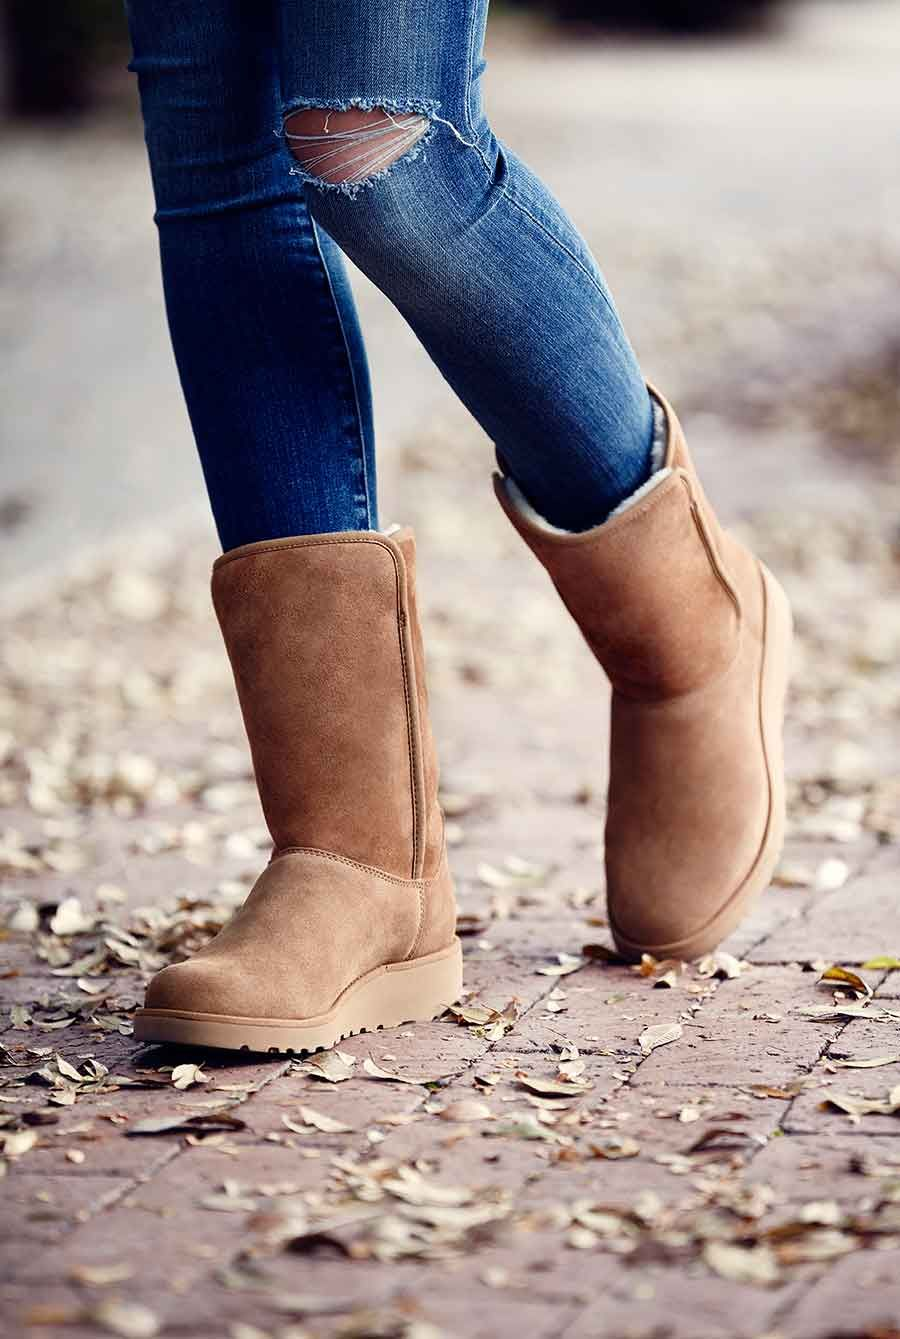 Wandfarbe Aus Kleidung Entfernen Women Wearing The Amie Boot Winter Boots Uggs Fashion Boots